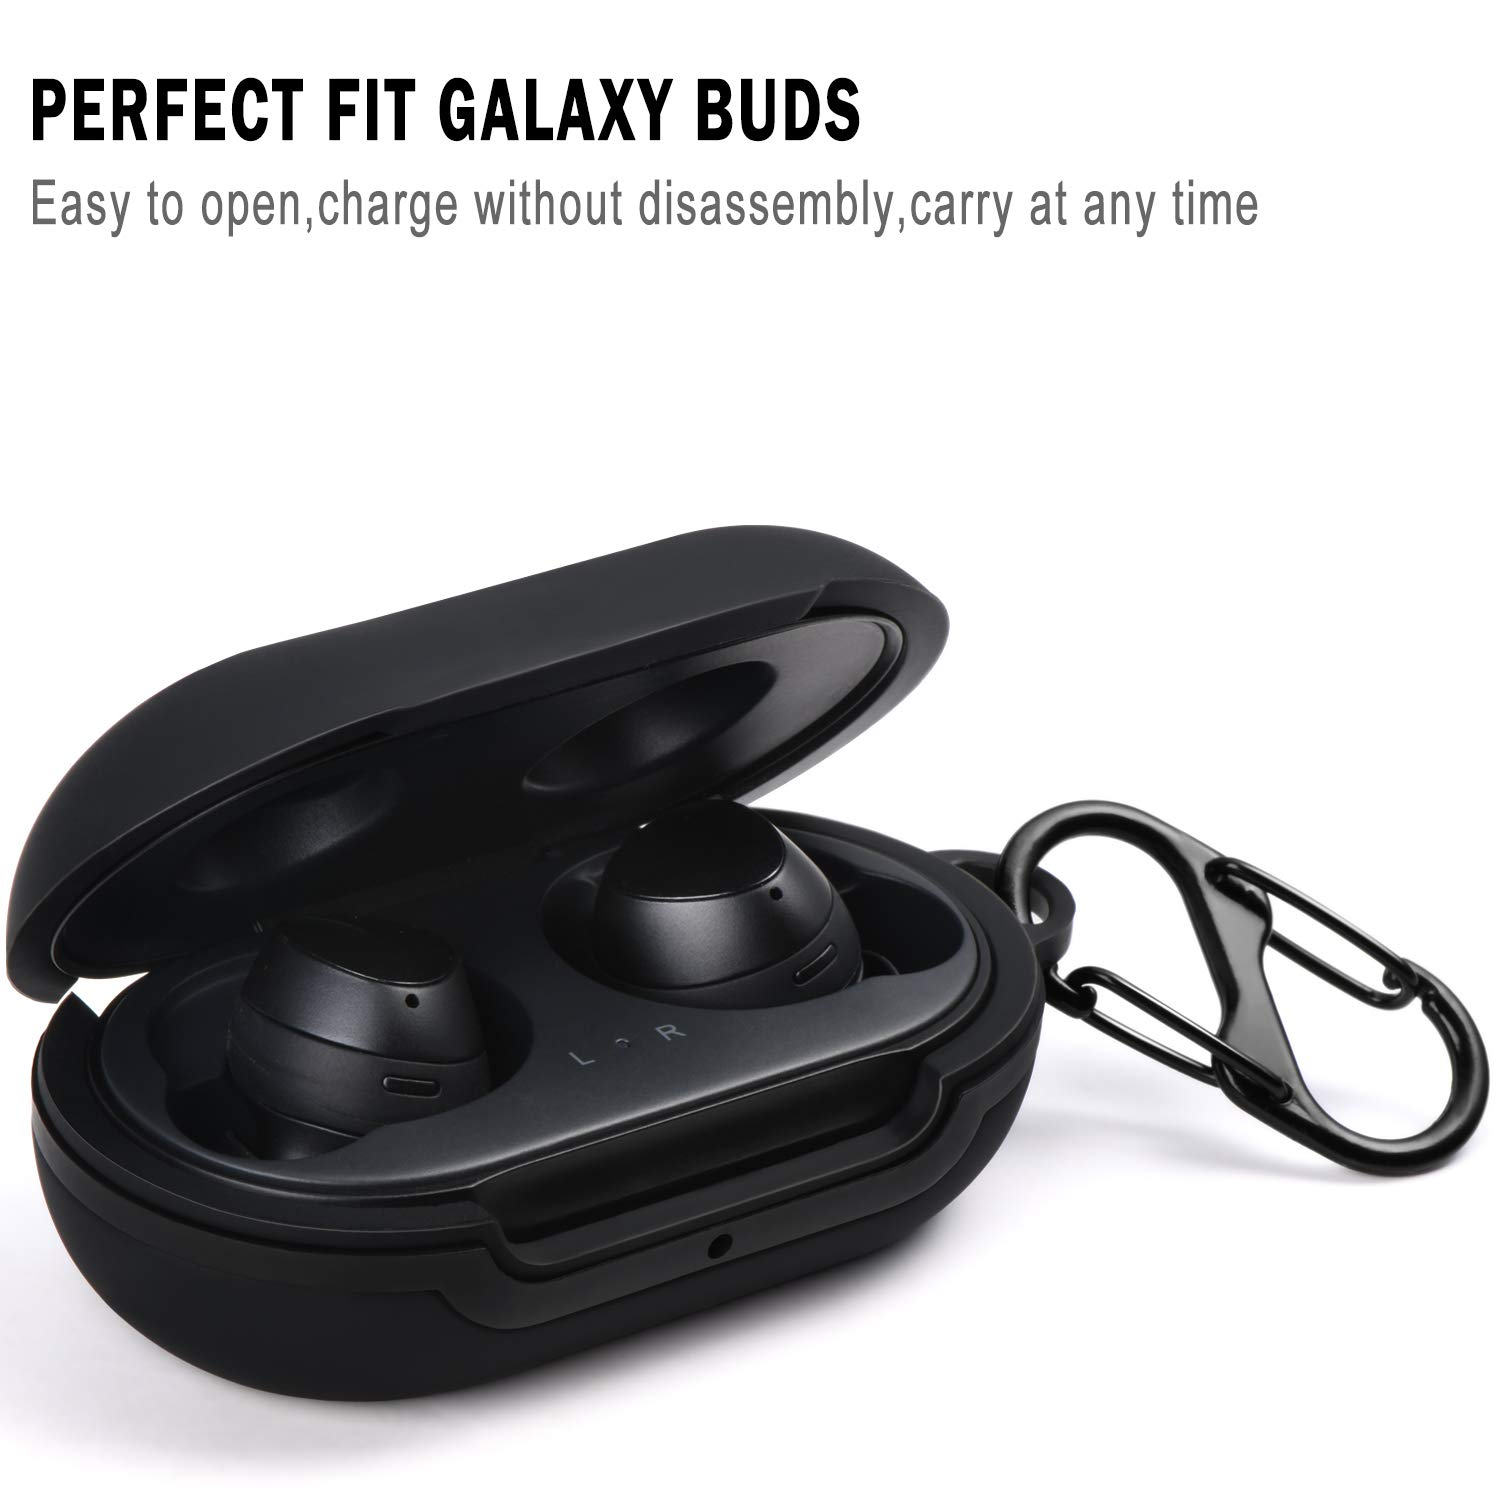 Acestar Silicone Case Cover Compatible with Galaxy Buds(2019)/Galaxy Buds Plus(2022), Full Body Protection, Scratch/Shock Resistant Silicone Case for Samsung Galaxy Buds and Galaxy Buds Plus (Black)